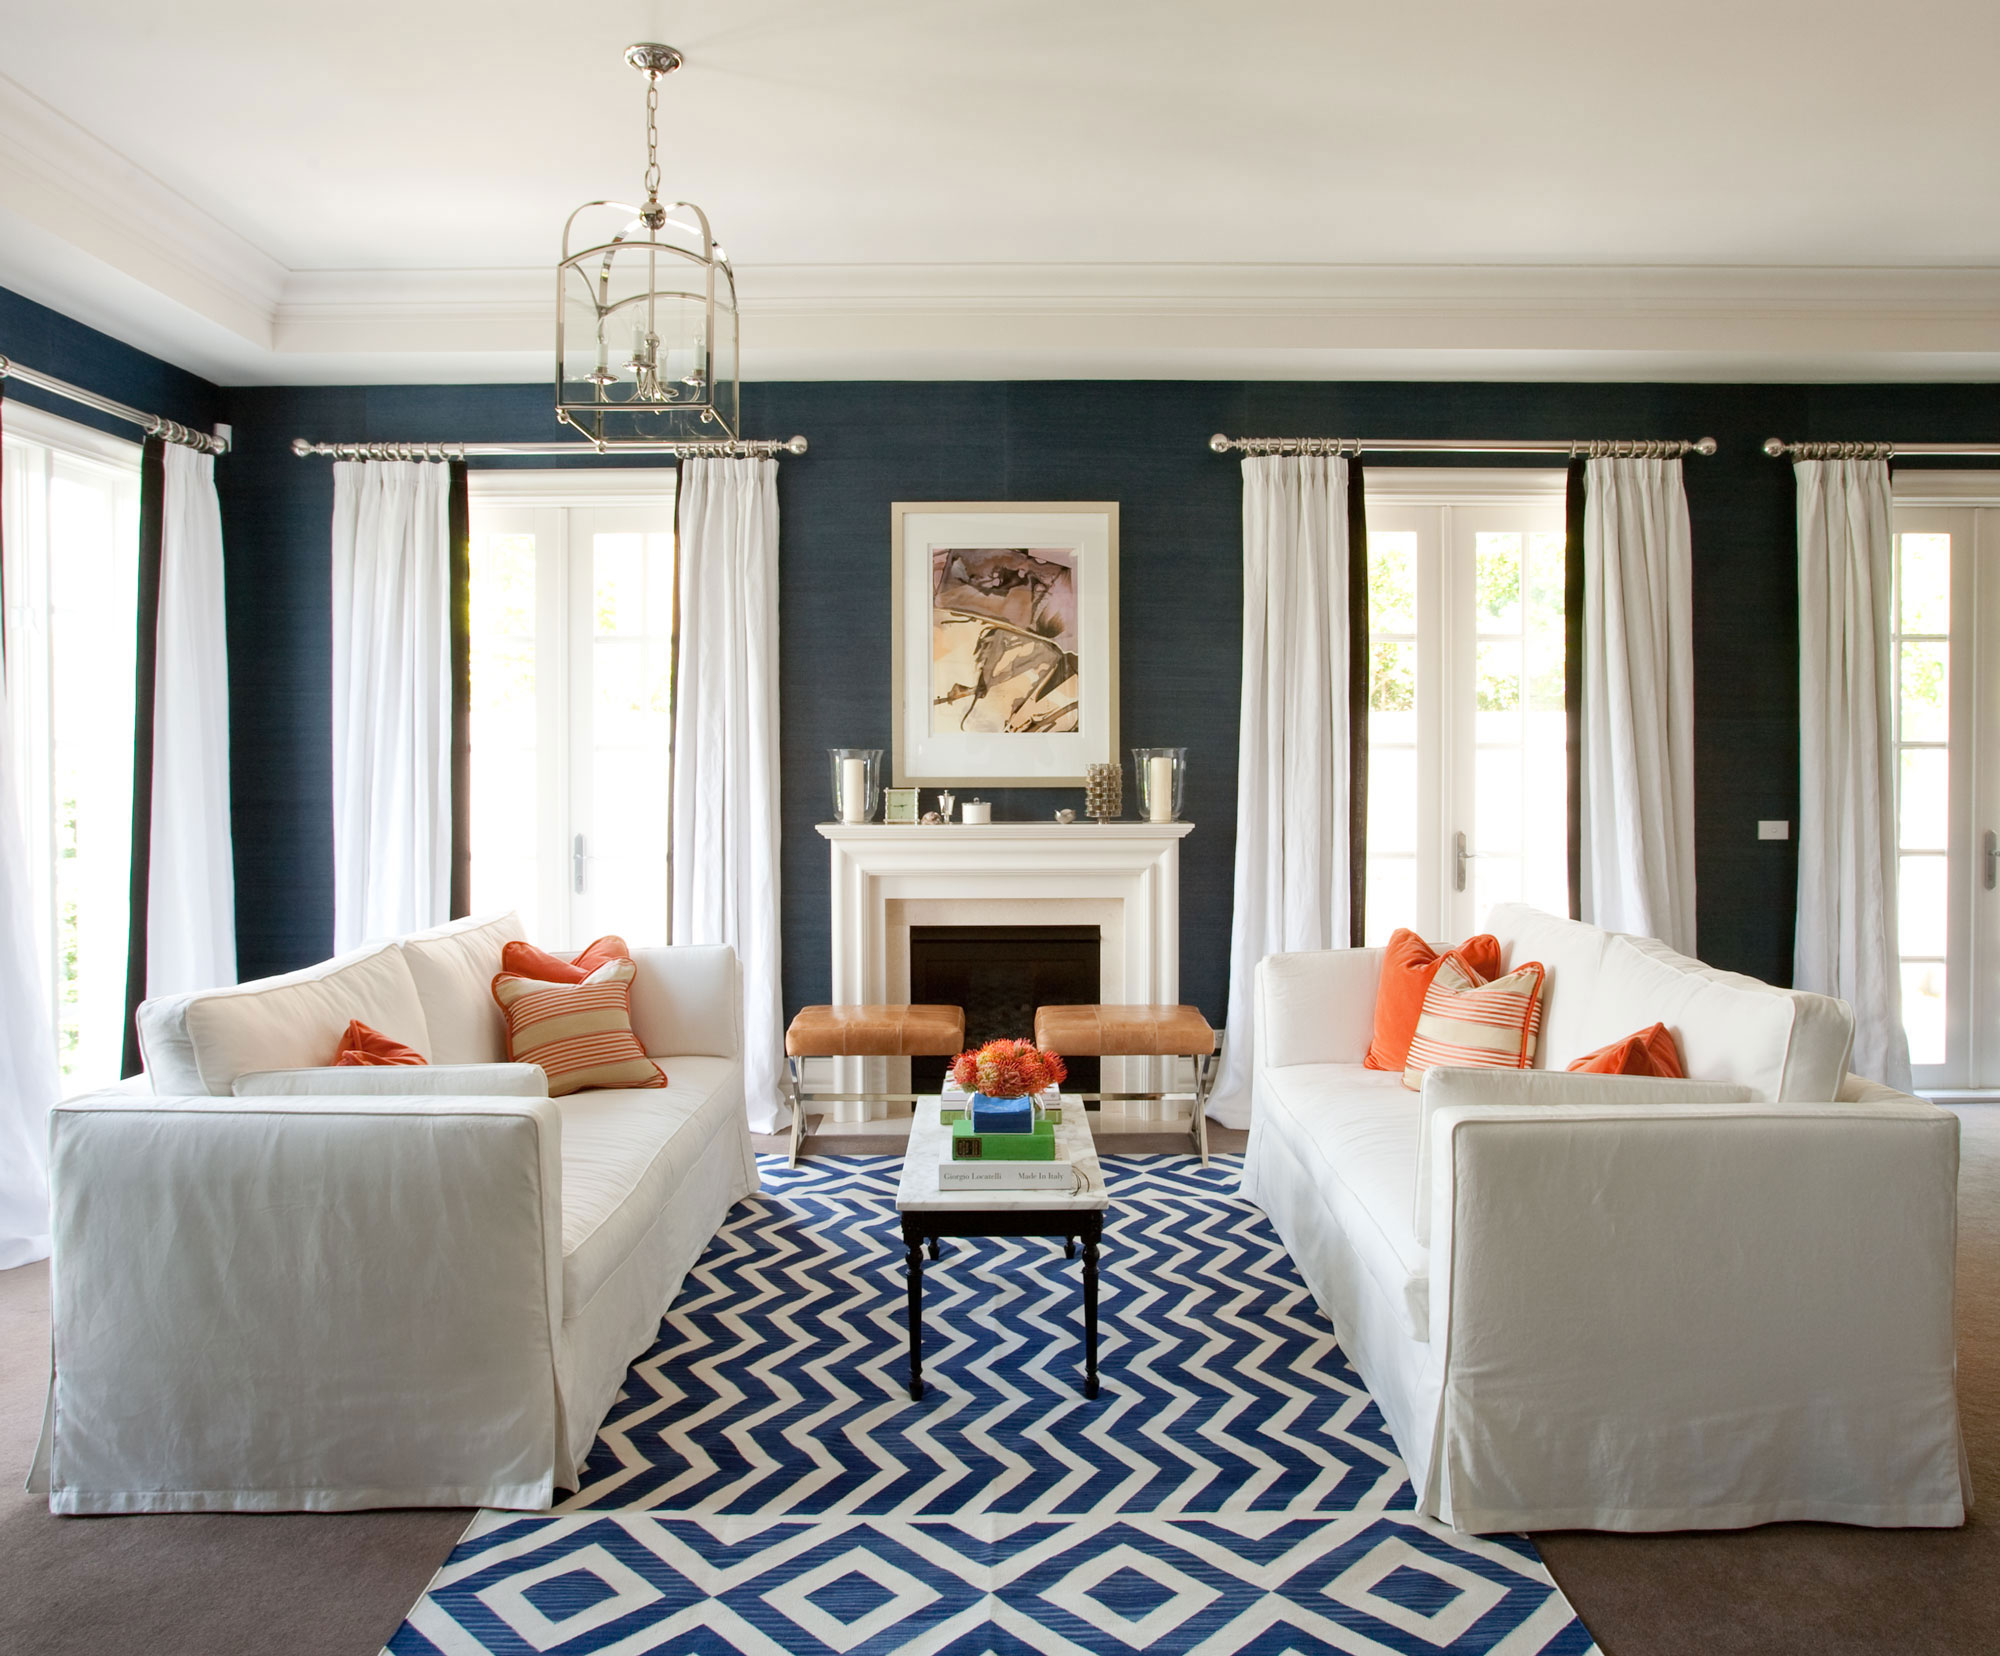 studying interior design courses online at mercer